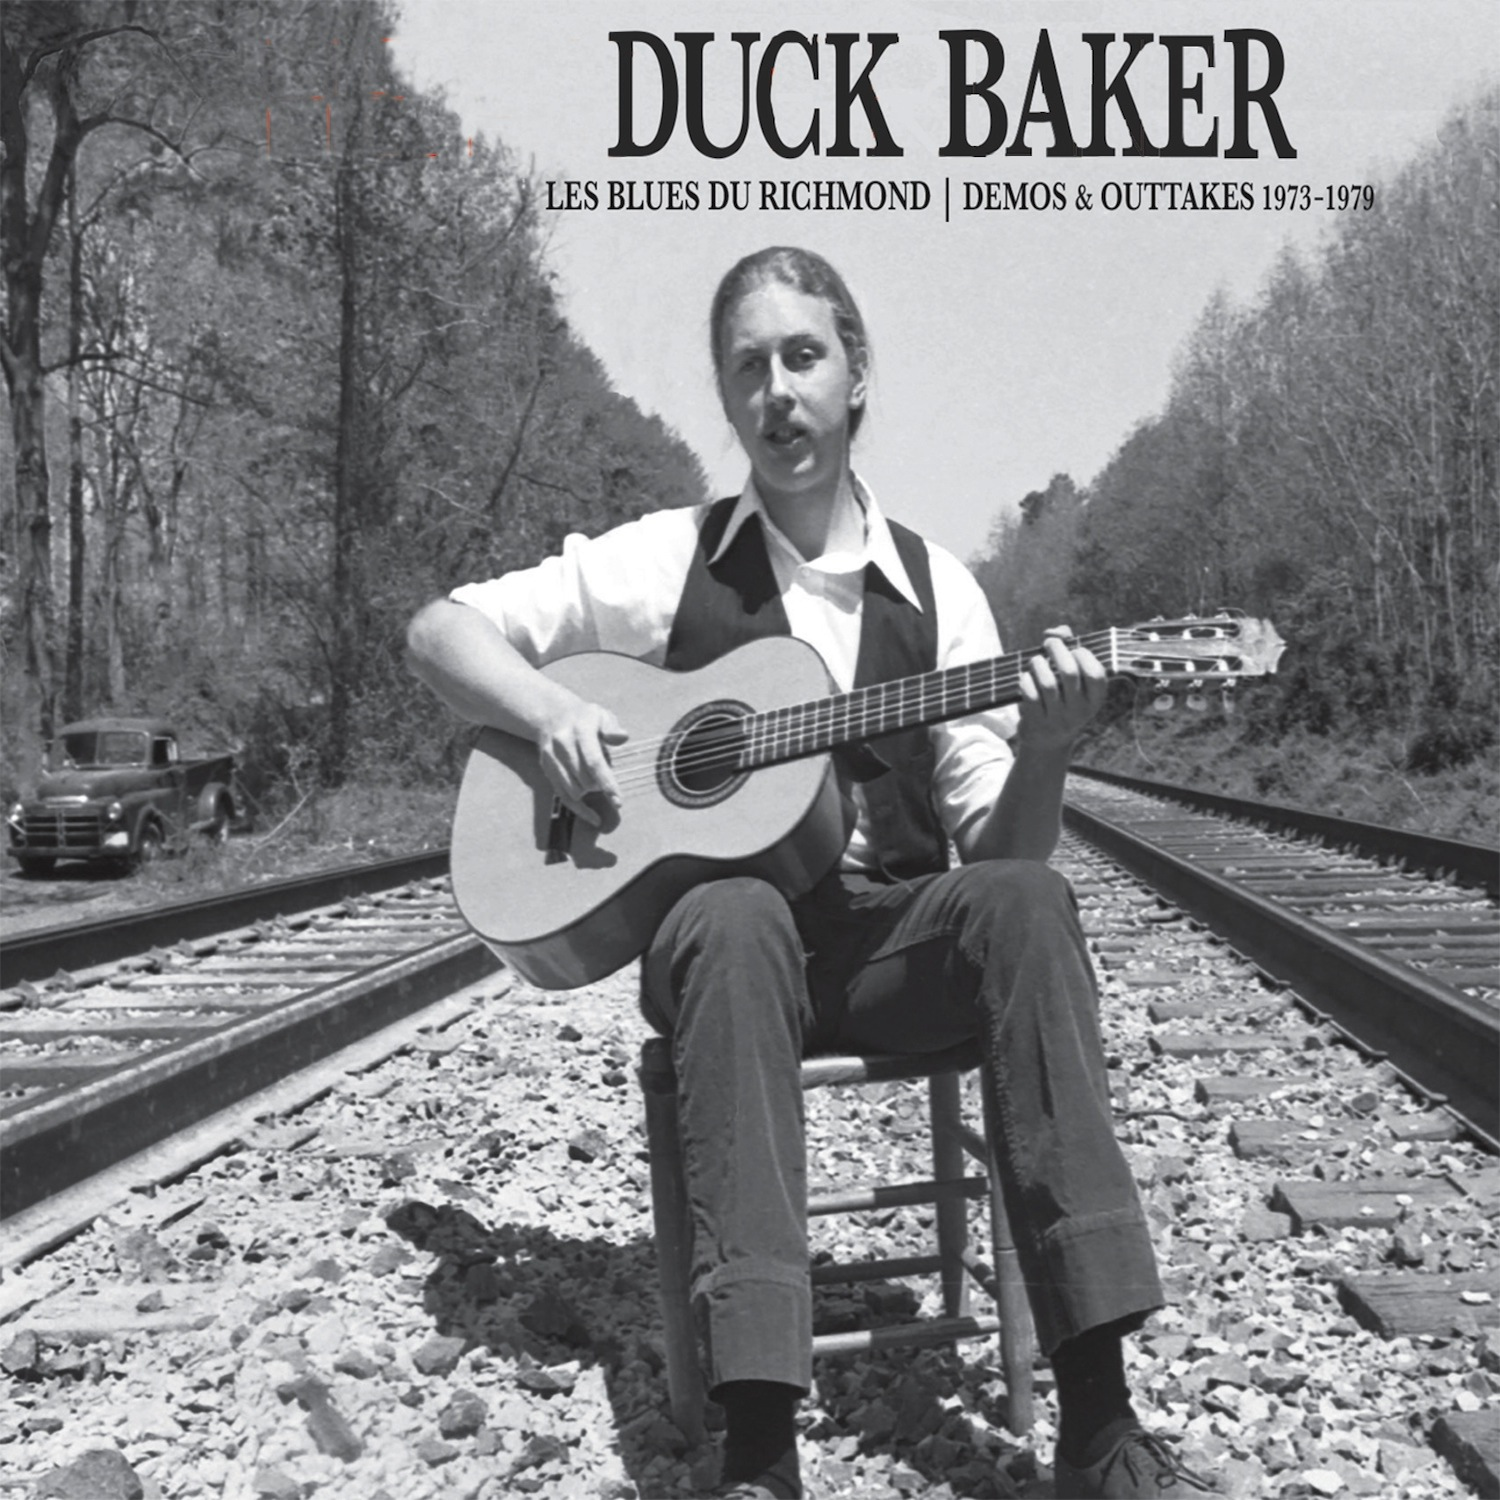 Duck Baker - Les Blues Du Richmond : Demos & Outtakes, 1973-1979